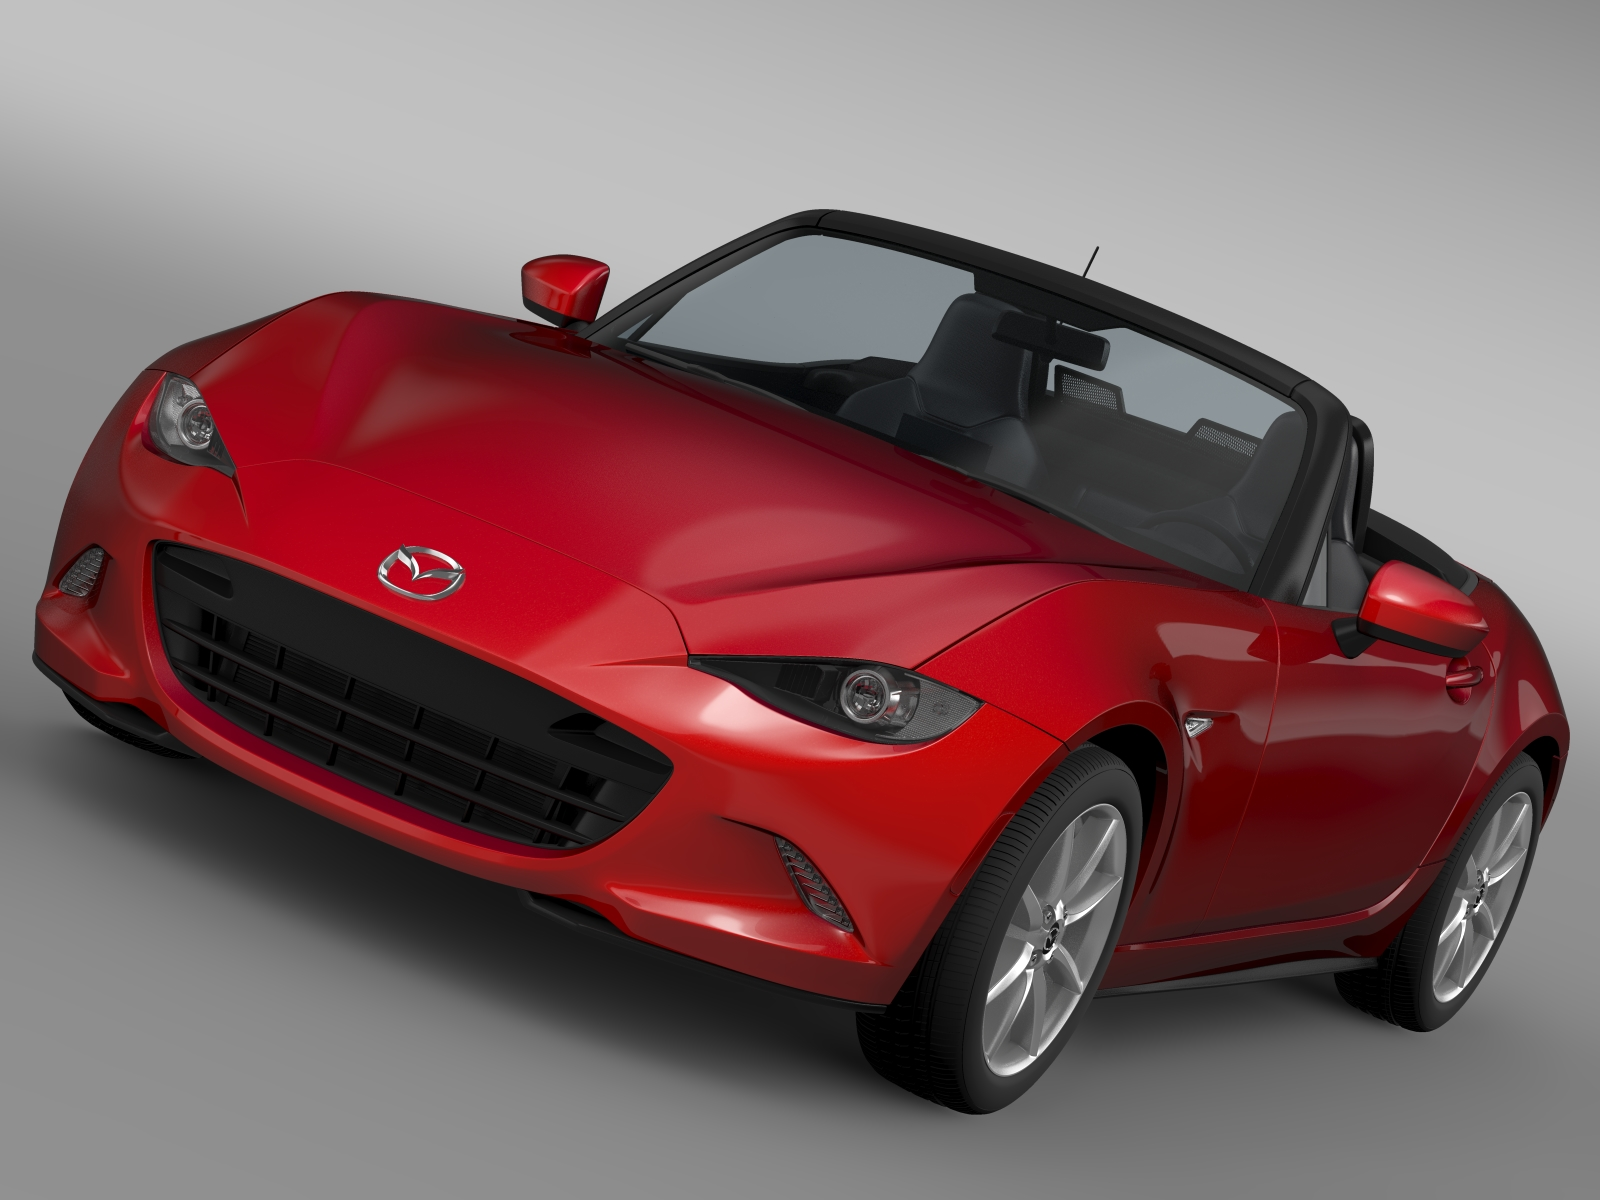 mazda mx 5 (nd) 2016 3d model 3ds fbx c4d lwo ma mb hrc xsi obj 217924